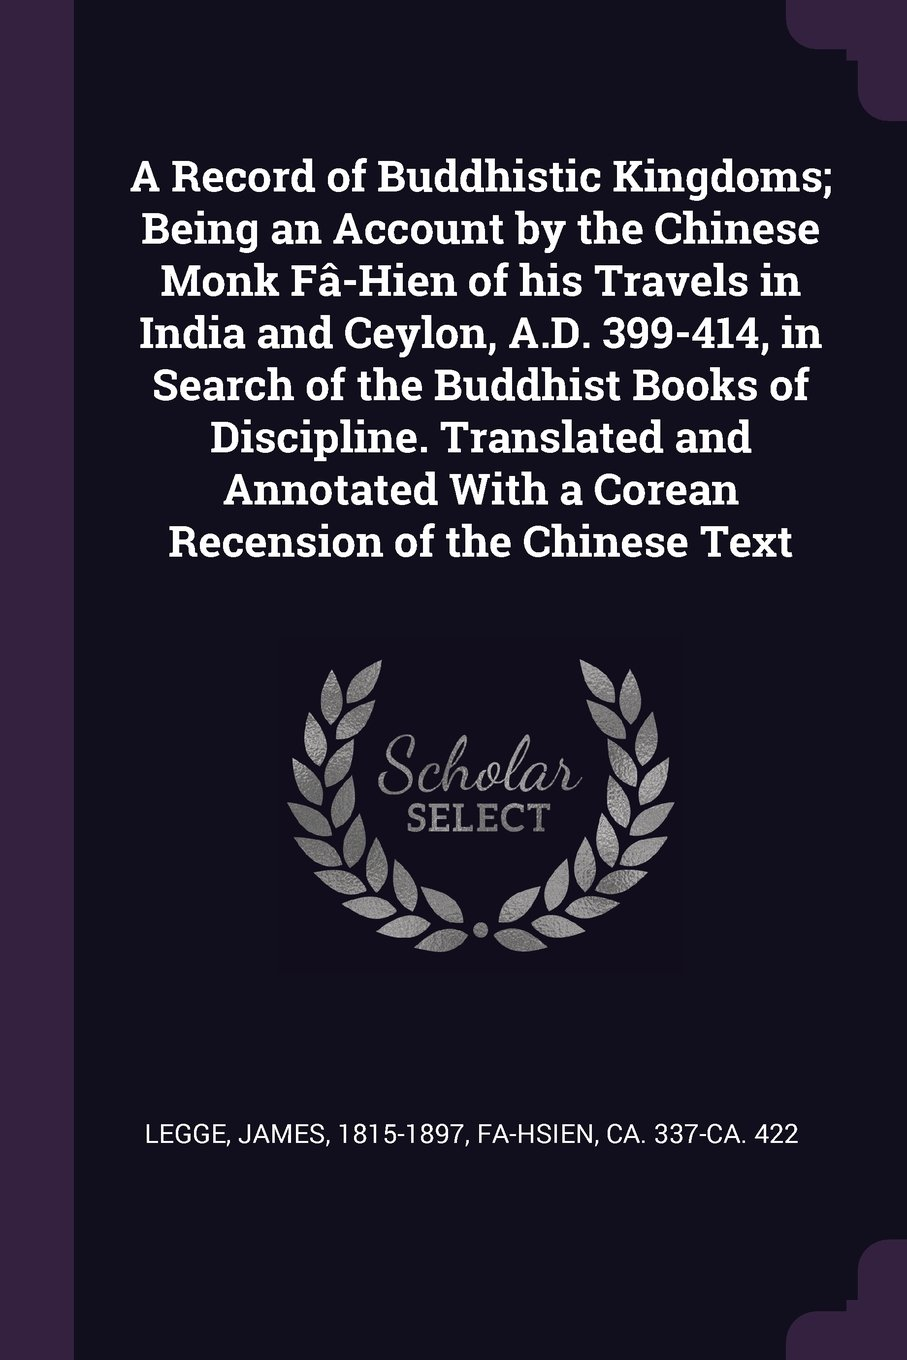 Download A Record of Buddhistic Kingdoms; Being an Account by the Chinese Monk Fâ-Hien of His Travels in India and Ceylon, A.D. 399-414, in Search of the ... with a Corean Recension of the Chinese Text PDF